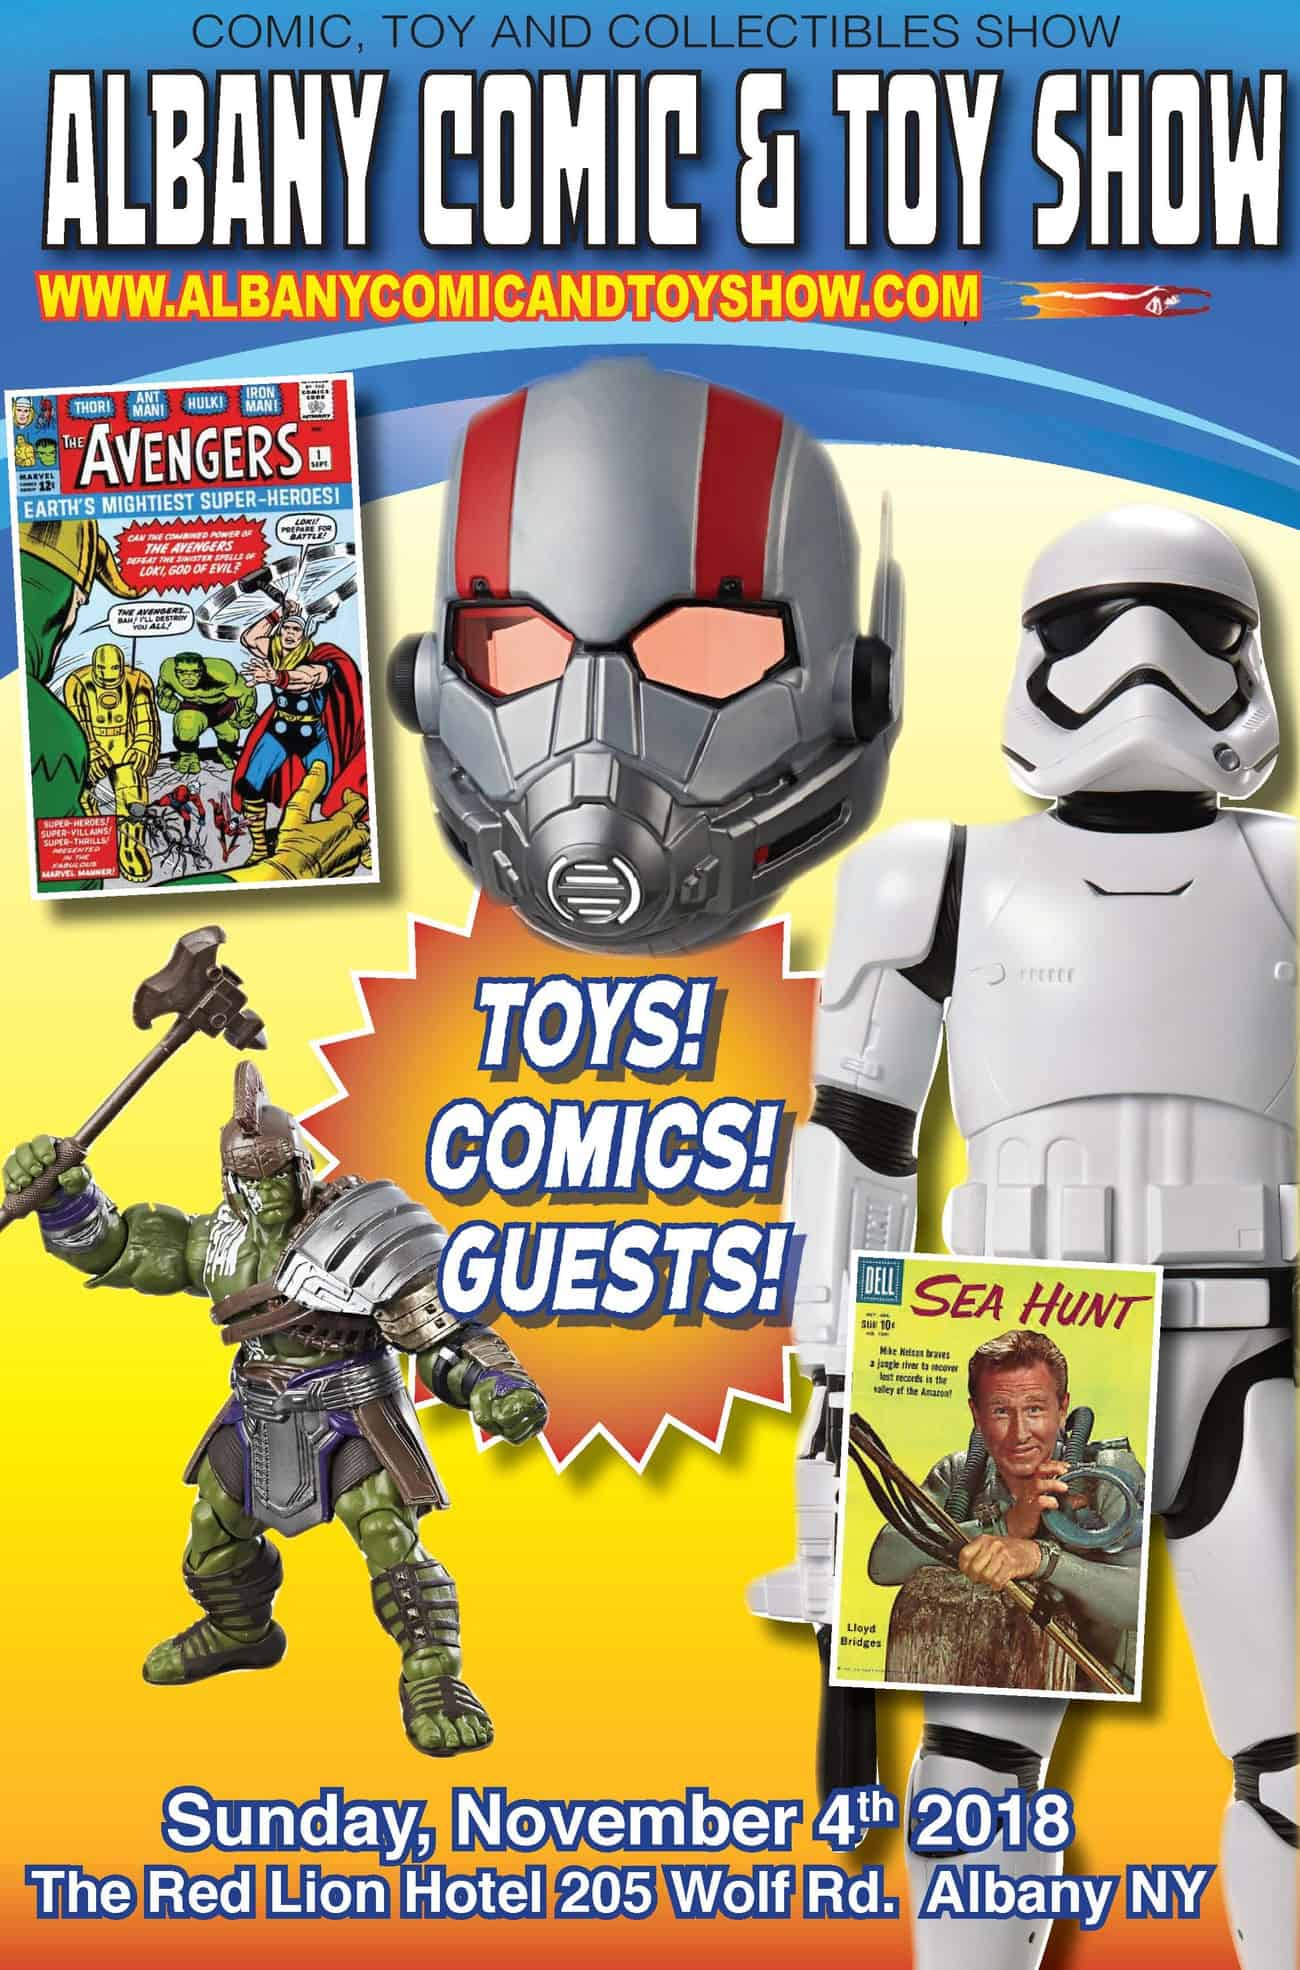 Albany Comic and Toy Show Sunday, October 21st, 2018